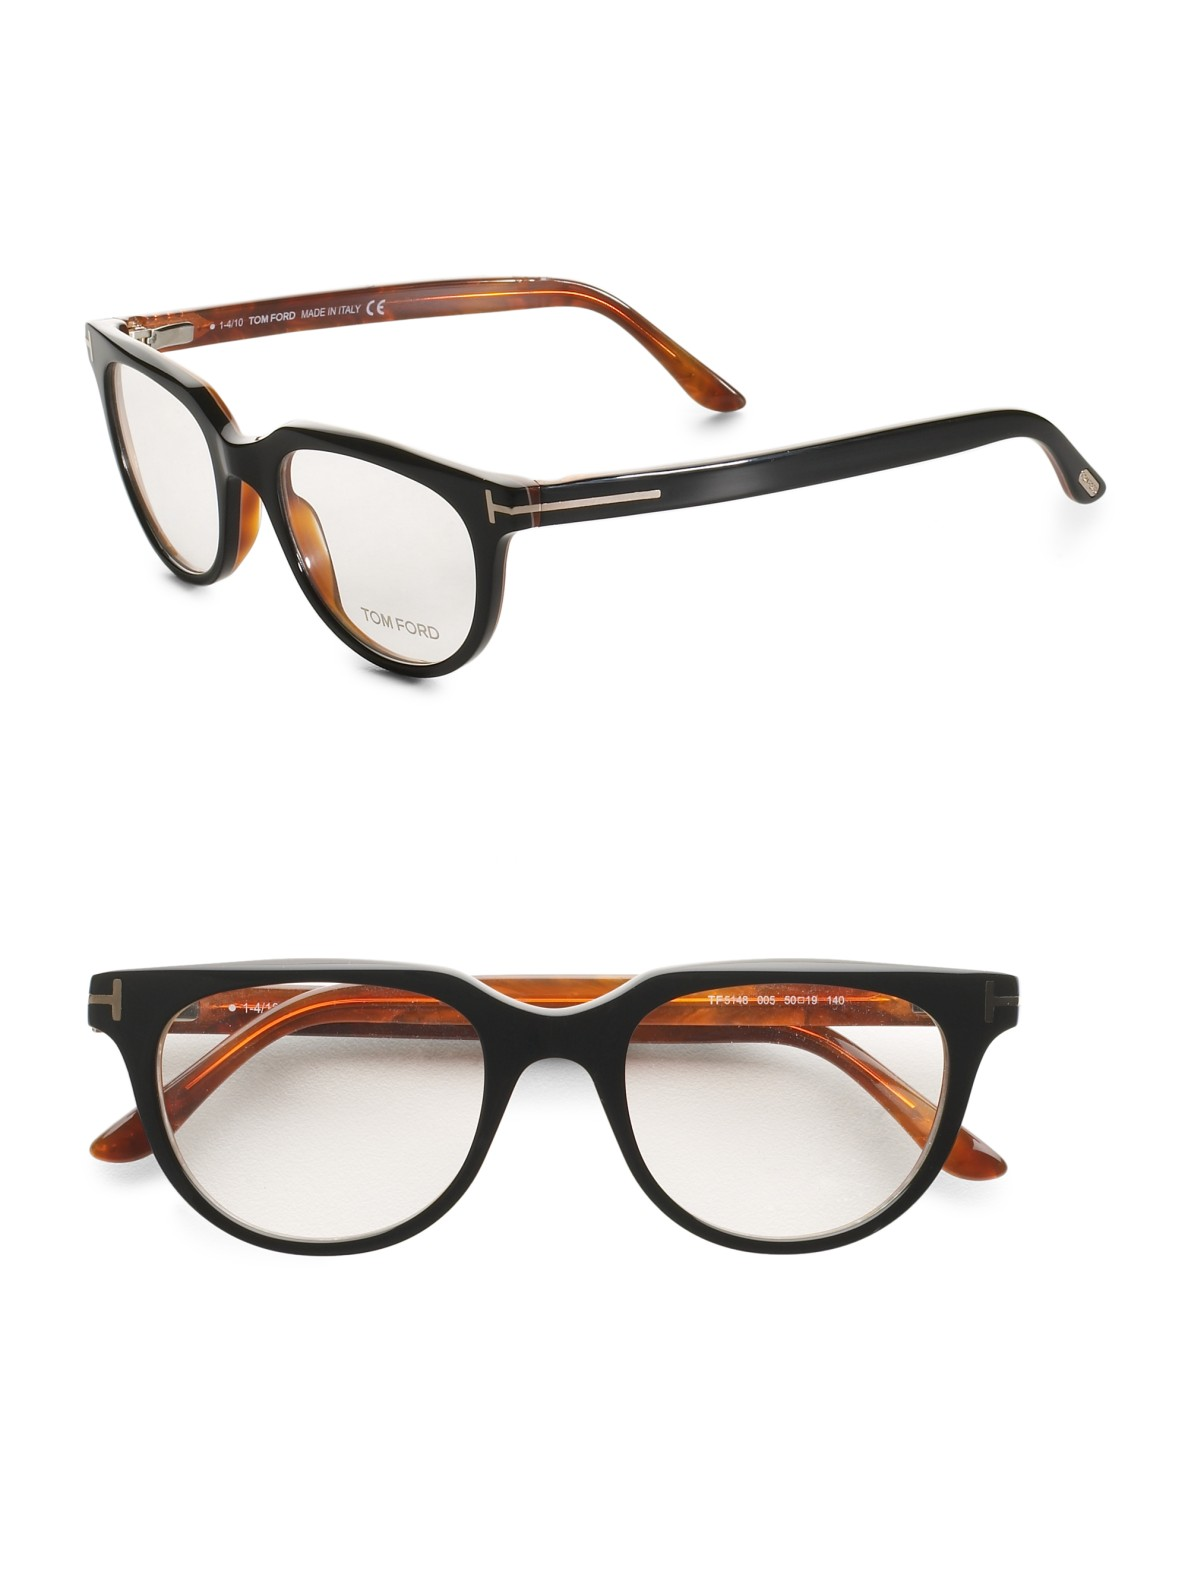 Acetate Frame Machine Tumbling Barrel Machine For Glasses Frames Eyeglass Machine Mail: Tom Ford Vintage Acetate Frames In Black For Men